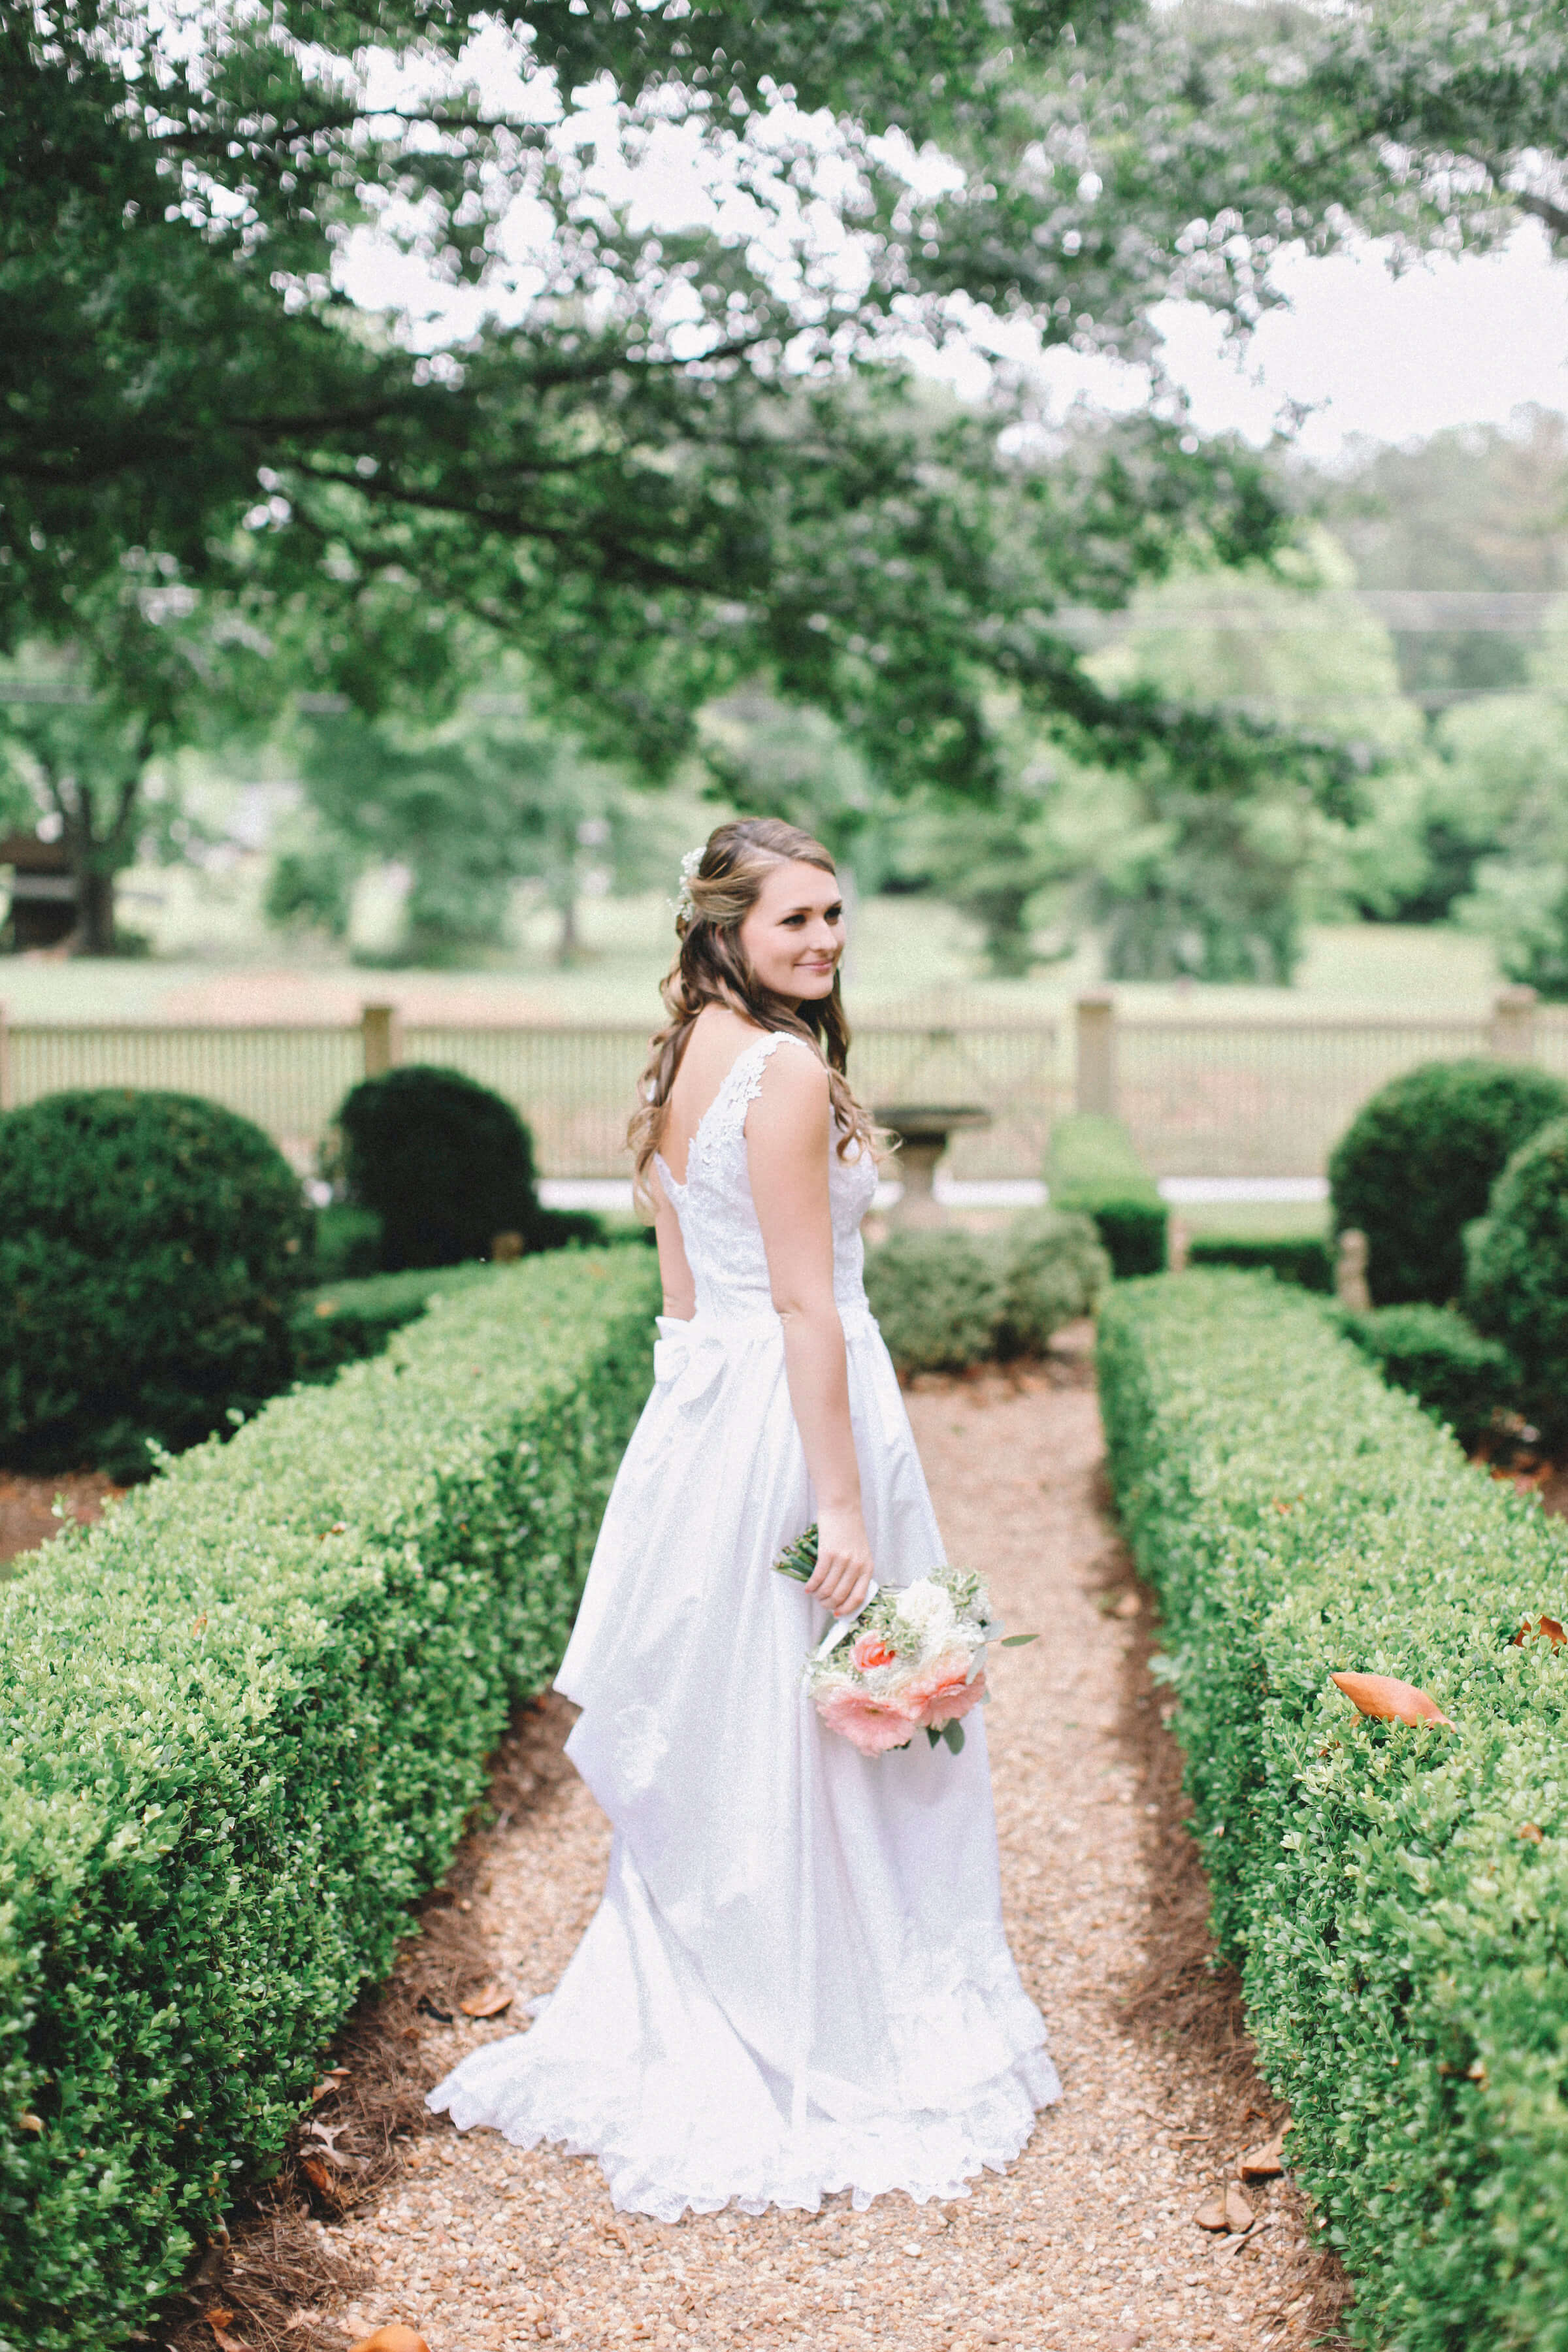 Savannah and Will Wedding. Flowers by Kelly Hillis, The Perfect Posey.  Photos by A. Thomas Photography